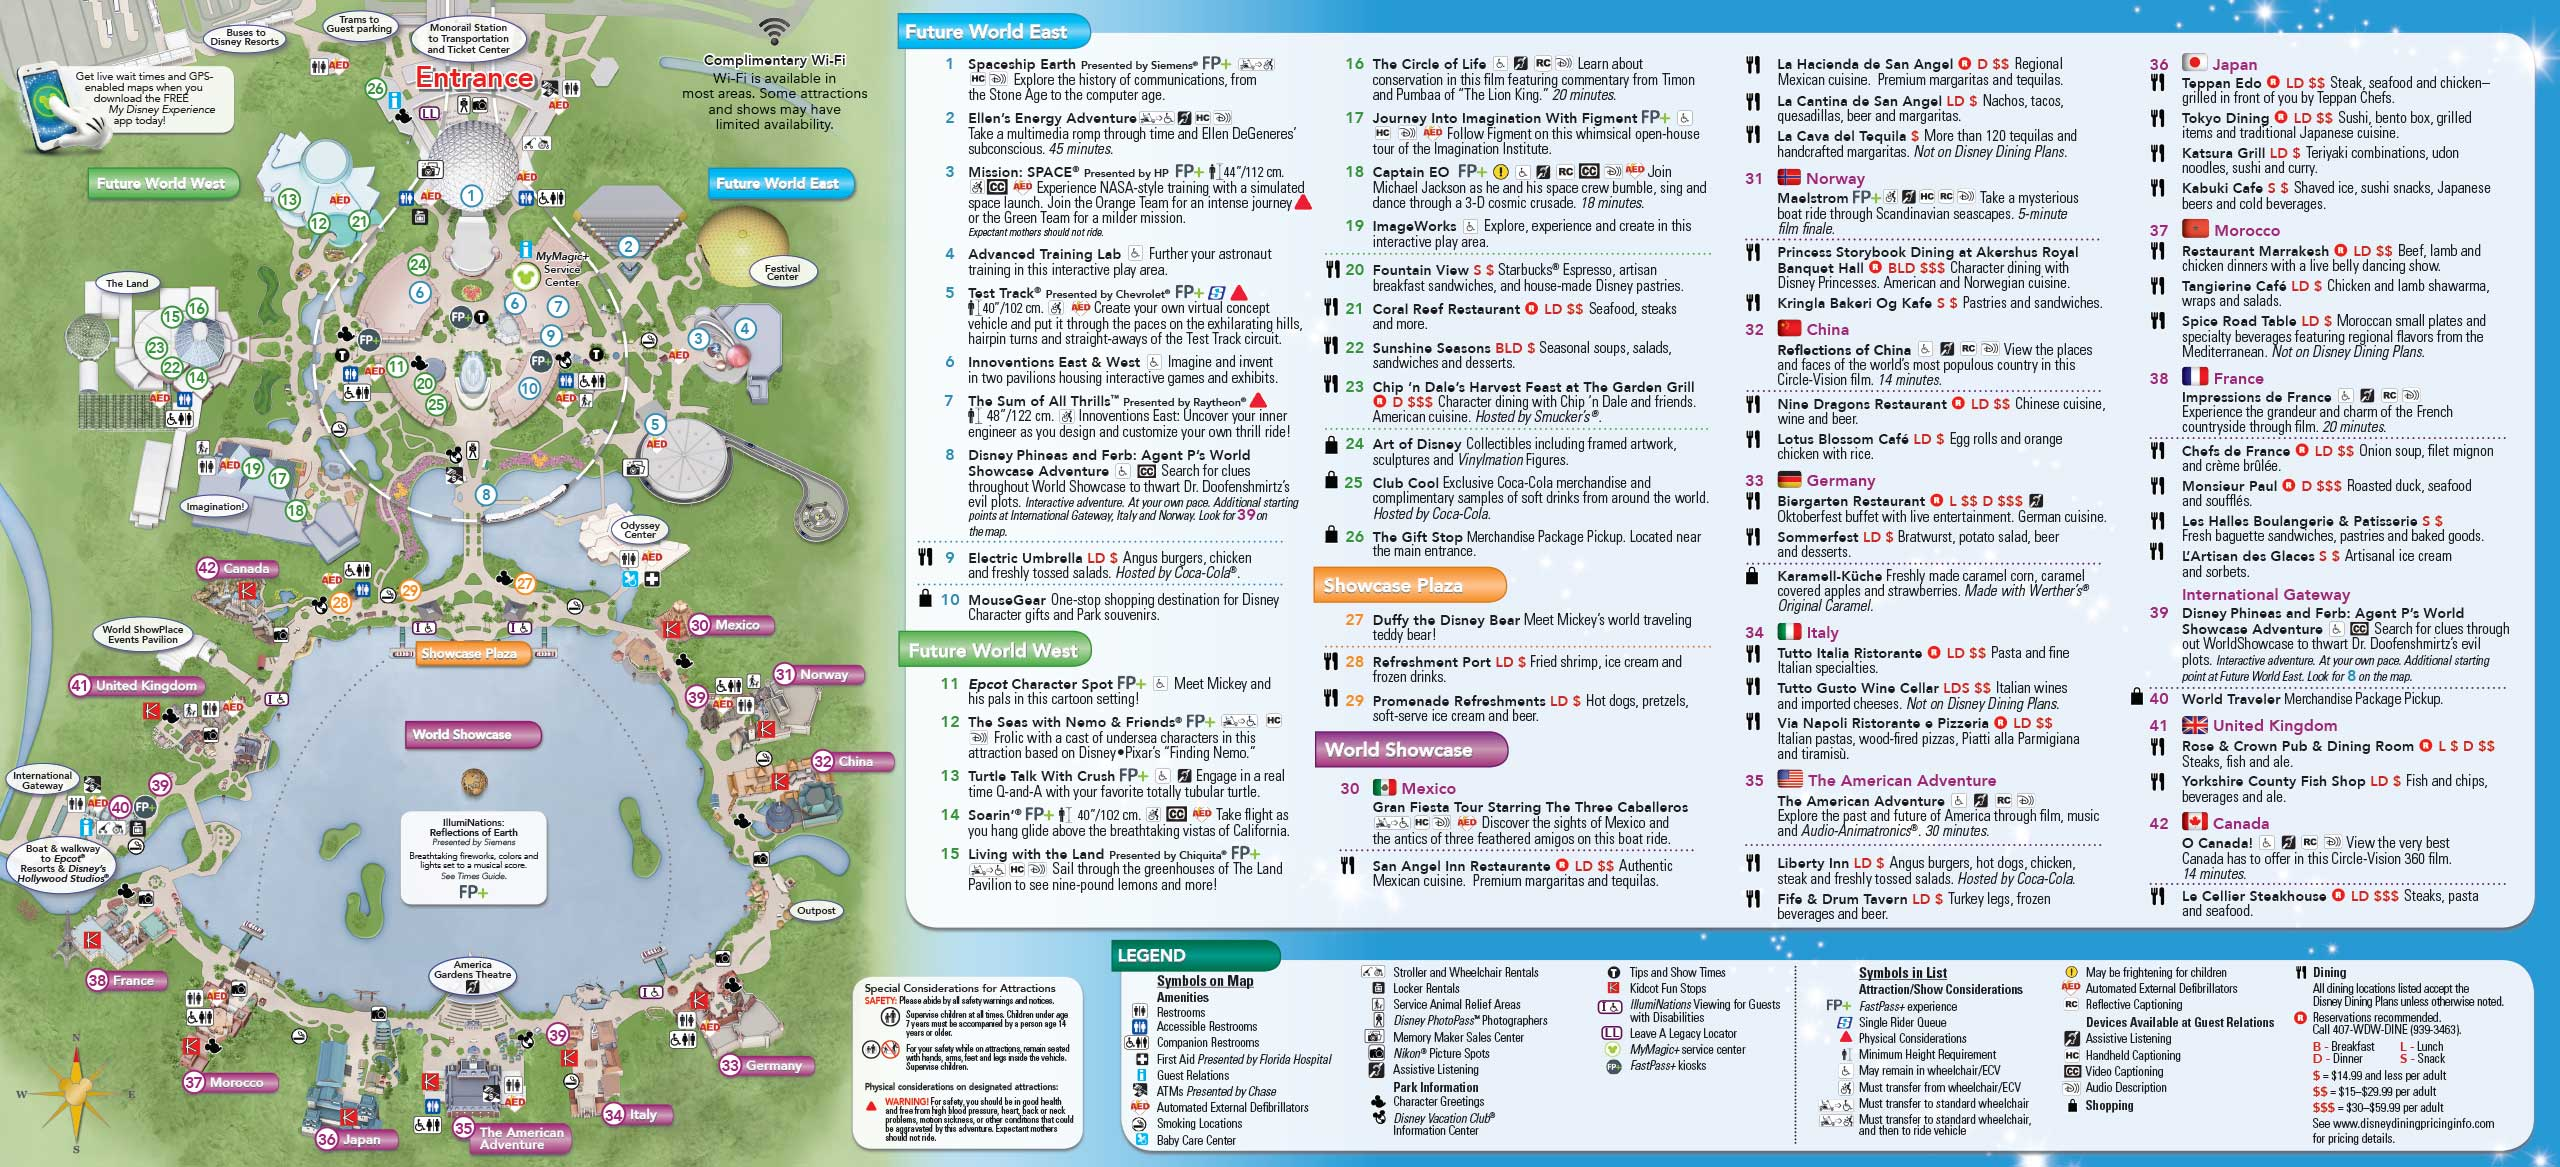 Walt Disney World Park and Resort Maps - 2014 Epcot guide map with ...